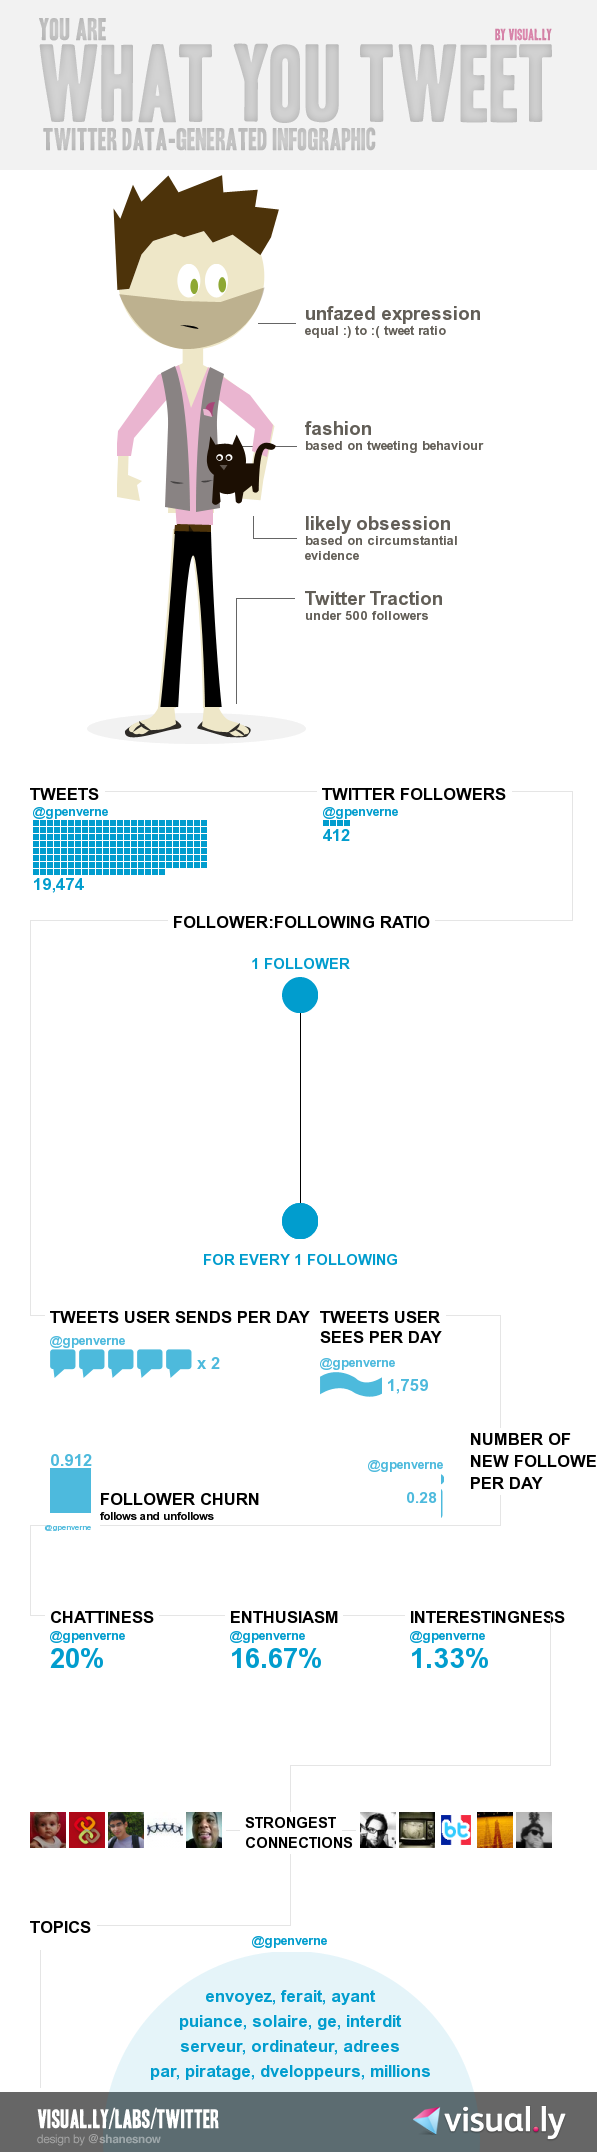 infographie twitter visual.ly